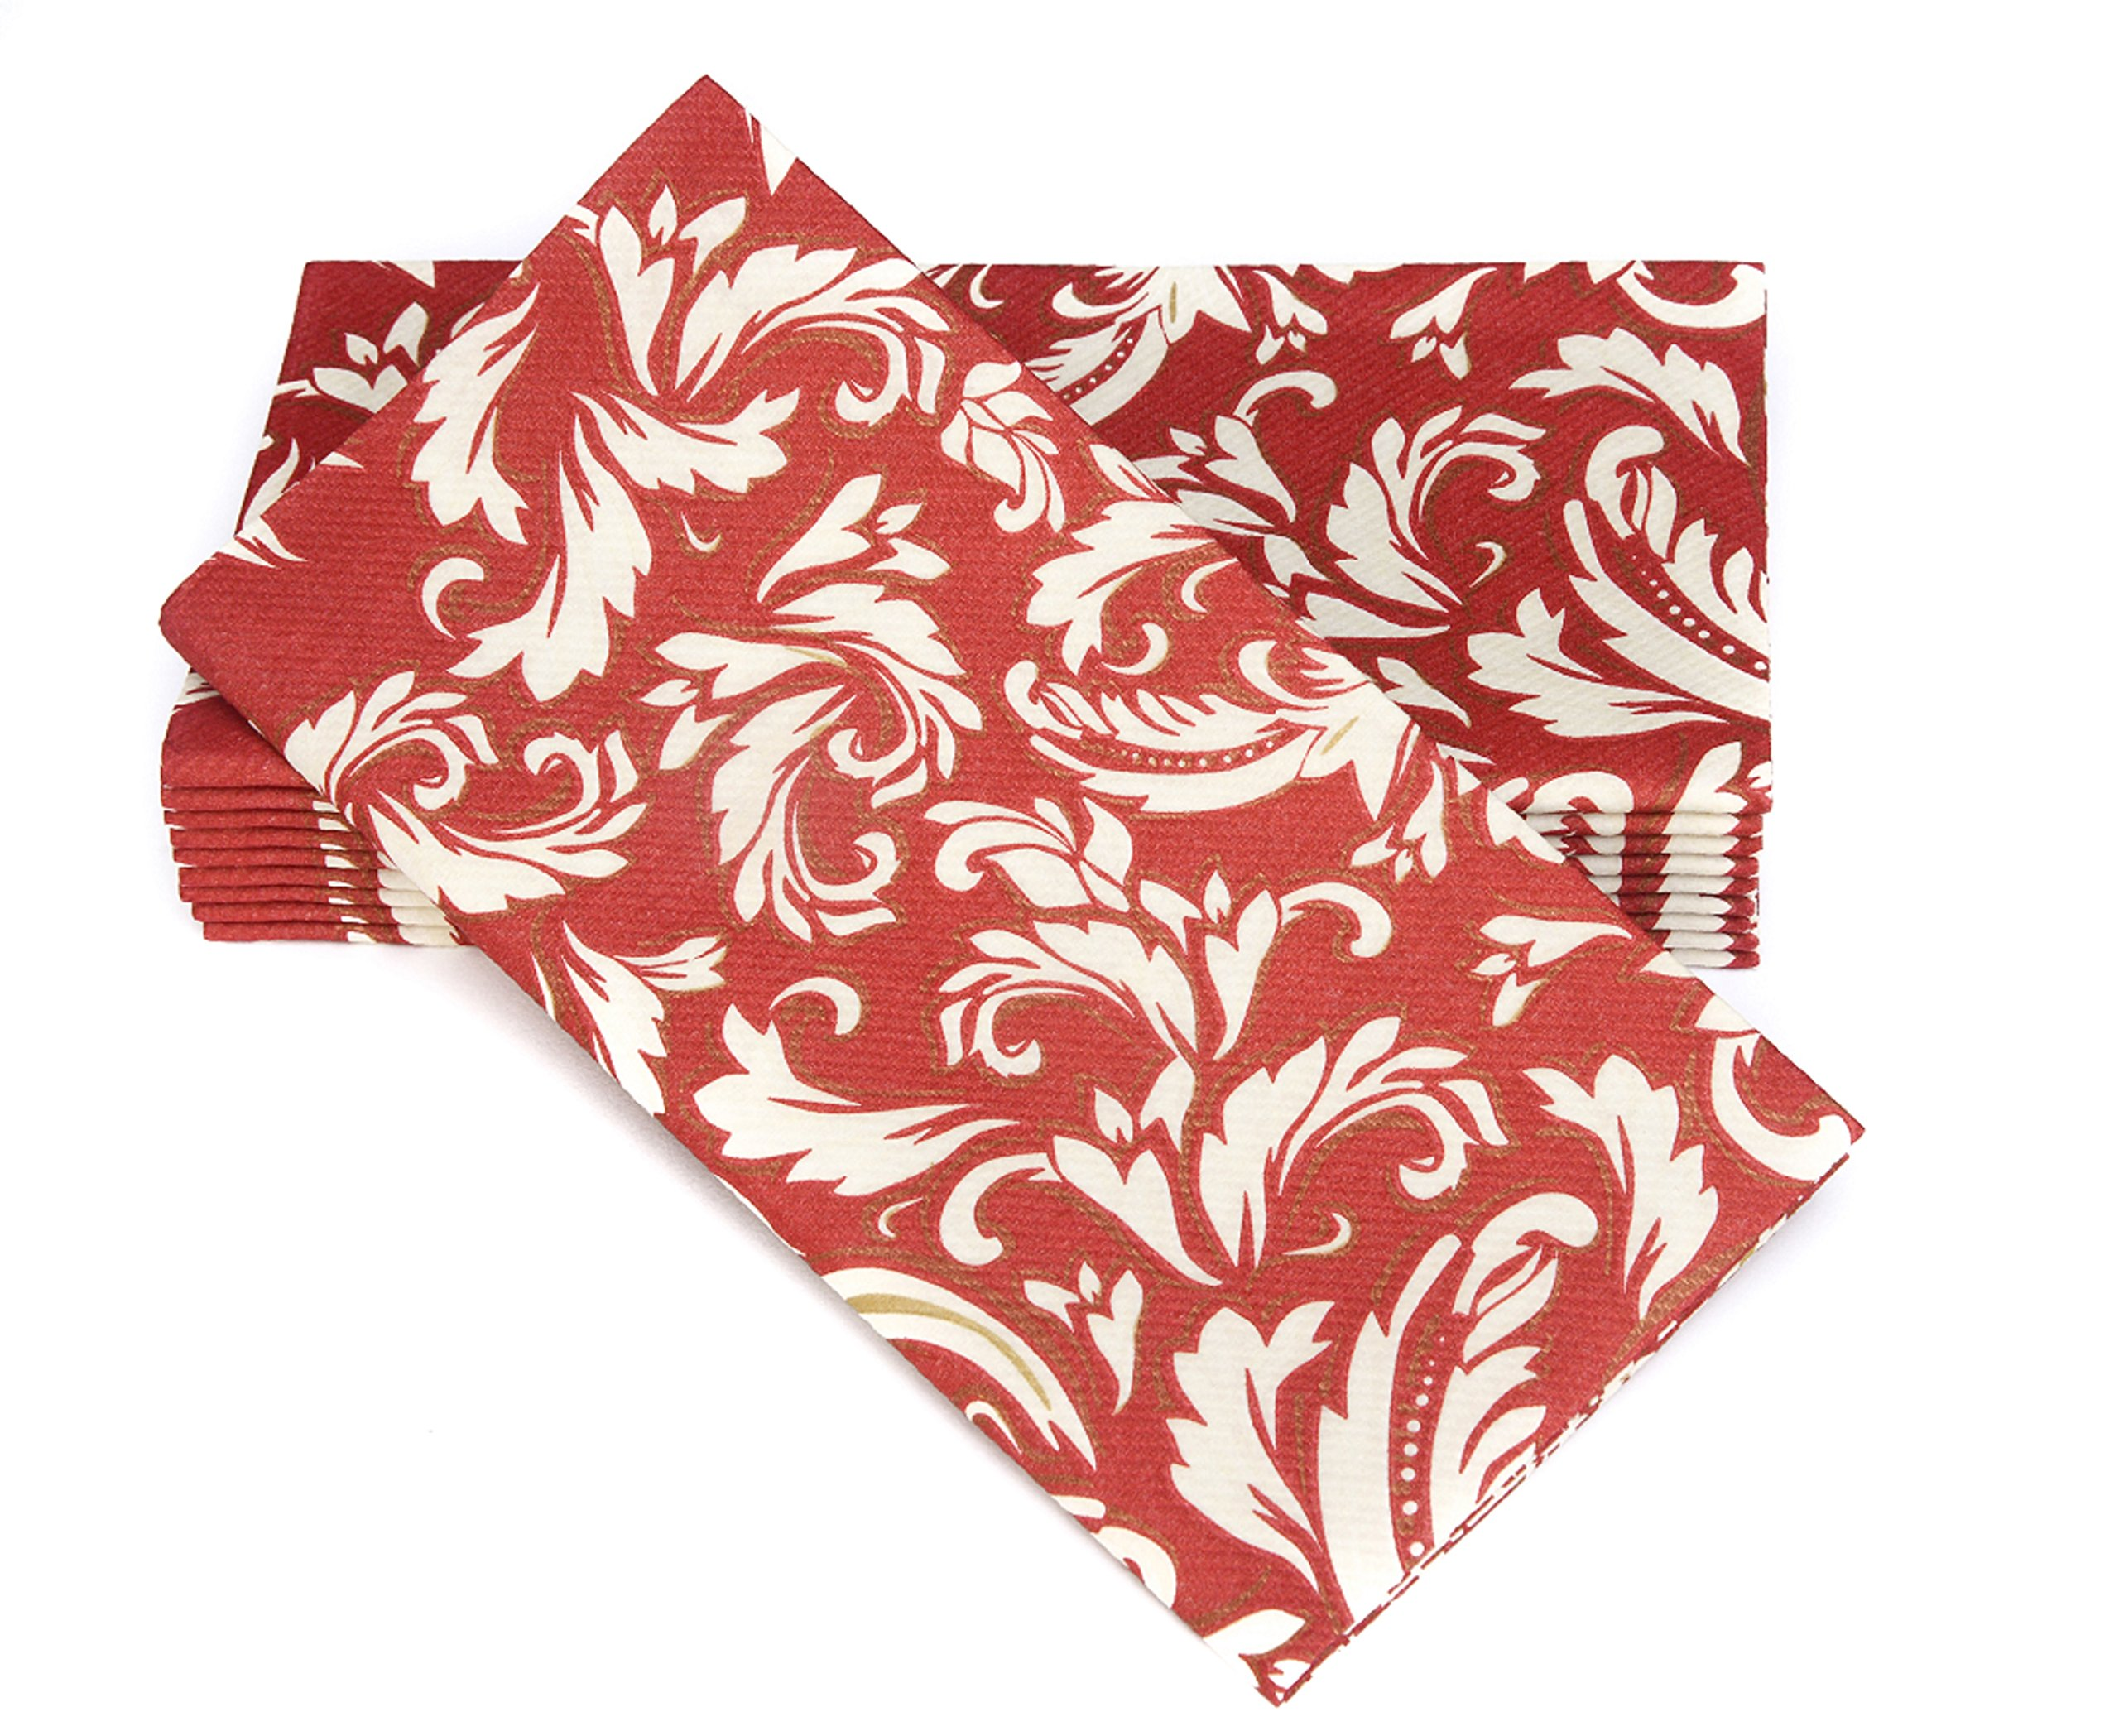 """Simulinen Colored Napkins - Decorative Cloth Like & Disposable, Dinner Napkins - Burgundy with Champagne & Gold - Soft, Absorbent & Durable - 16""""x16"""" - Great for Any Occasion! - Box of 50"""